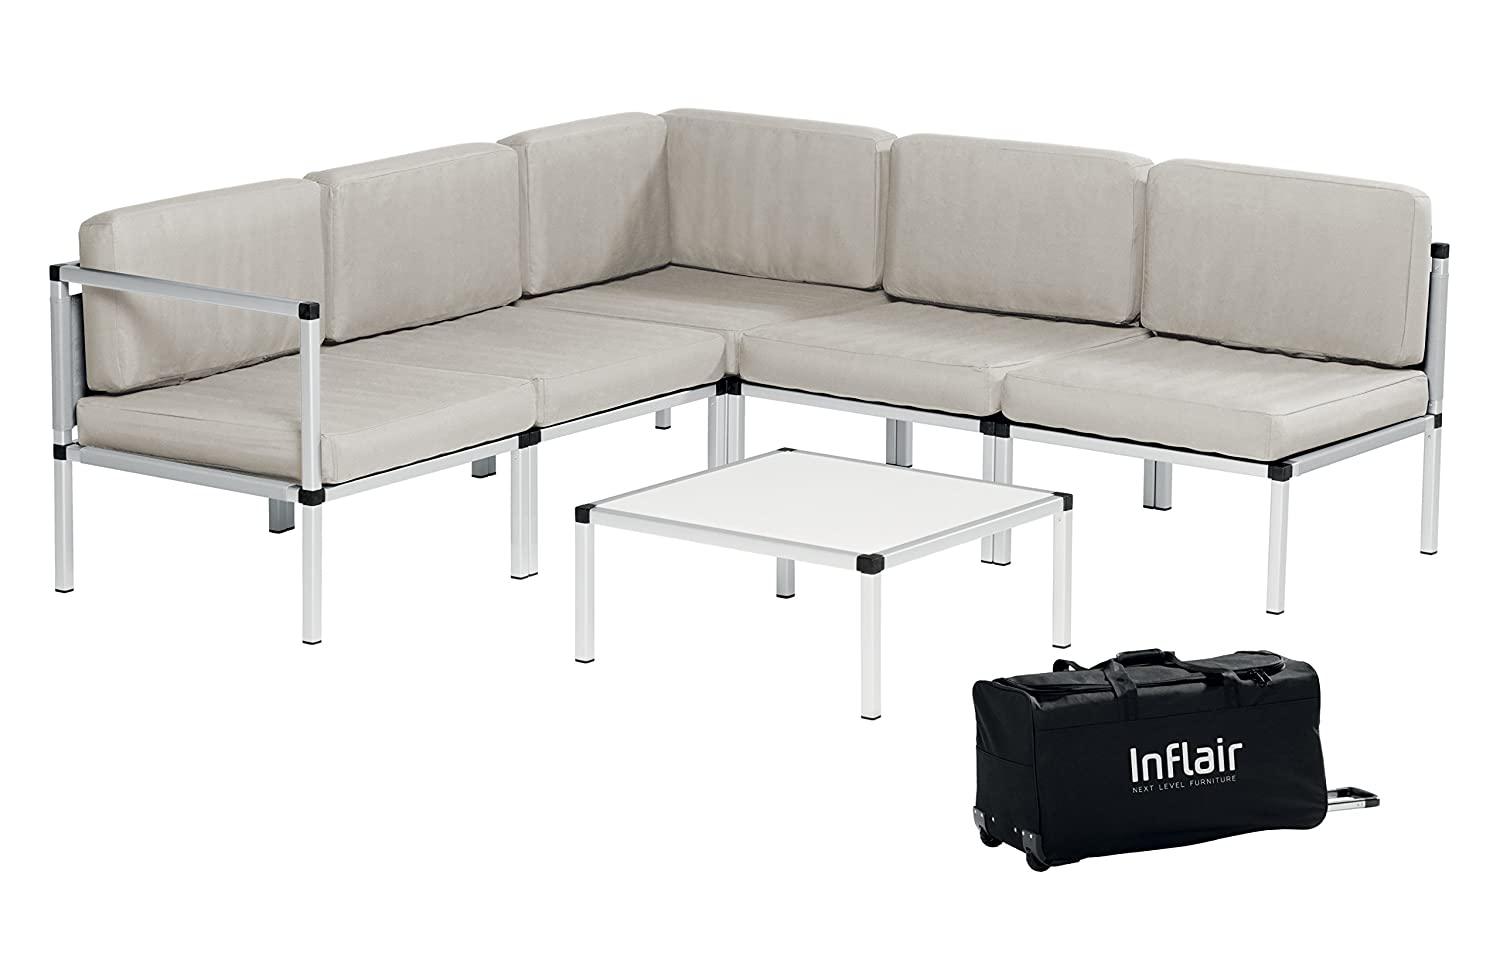 Inflair Lounge Set Superior Lounge Gruppe Sofa-Set Gartenmöbel ...